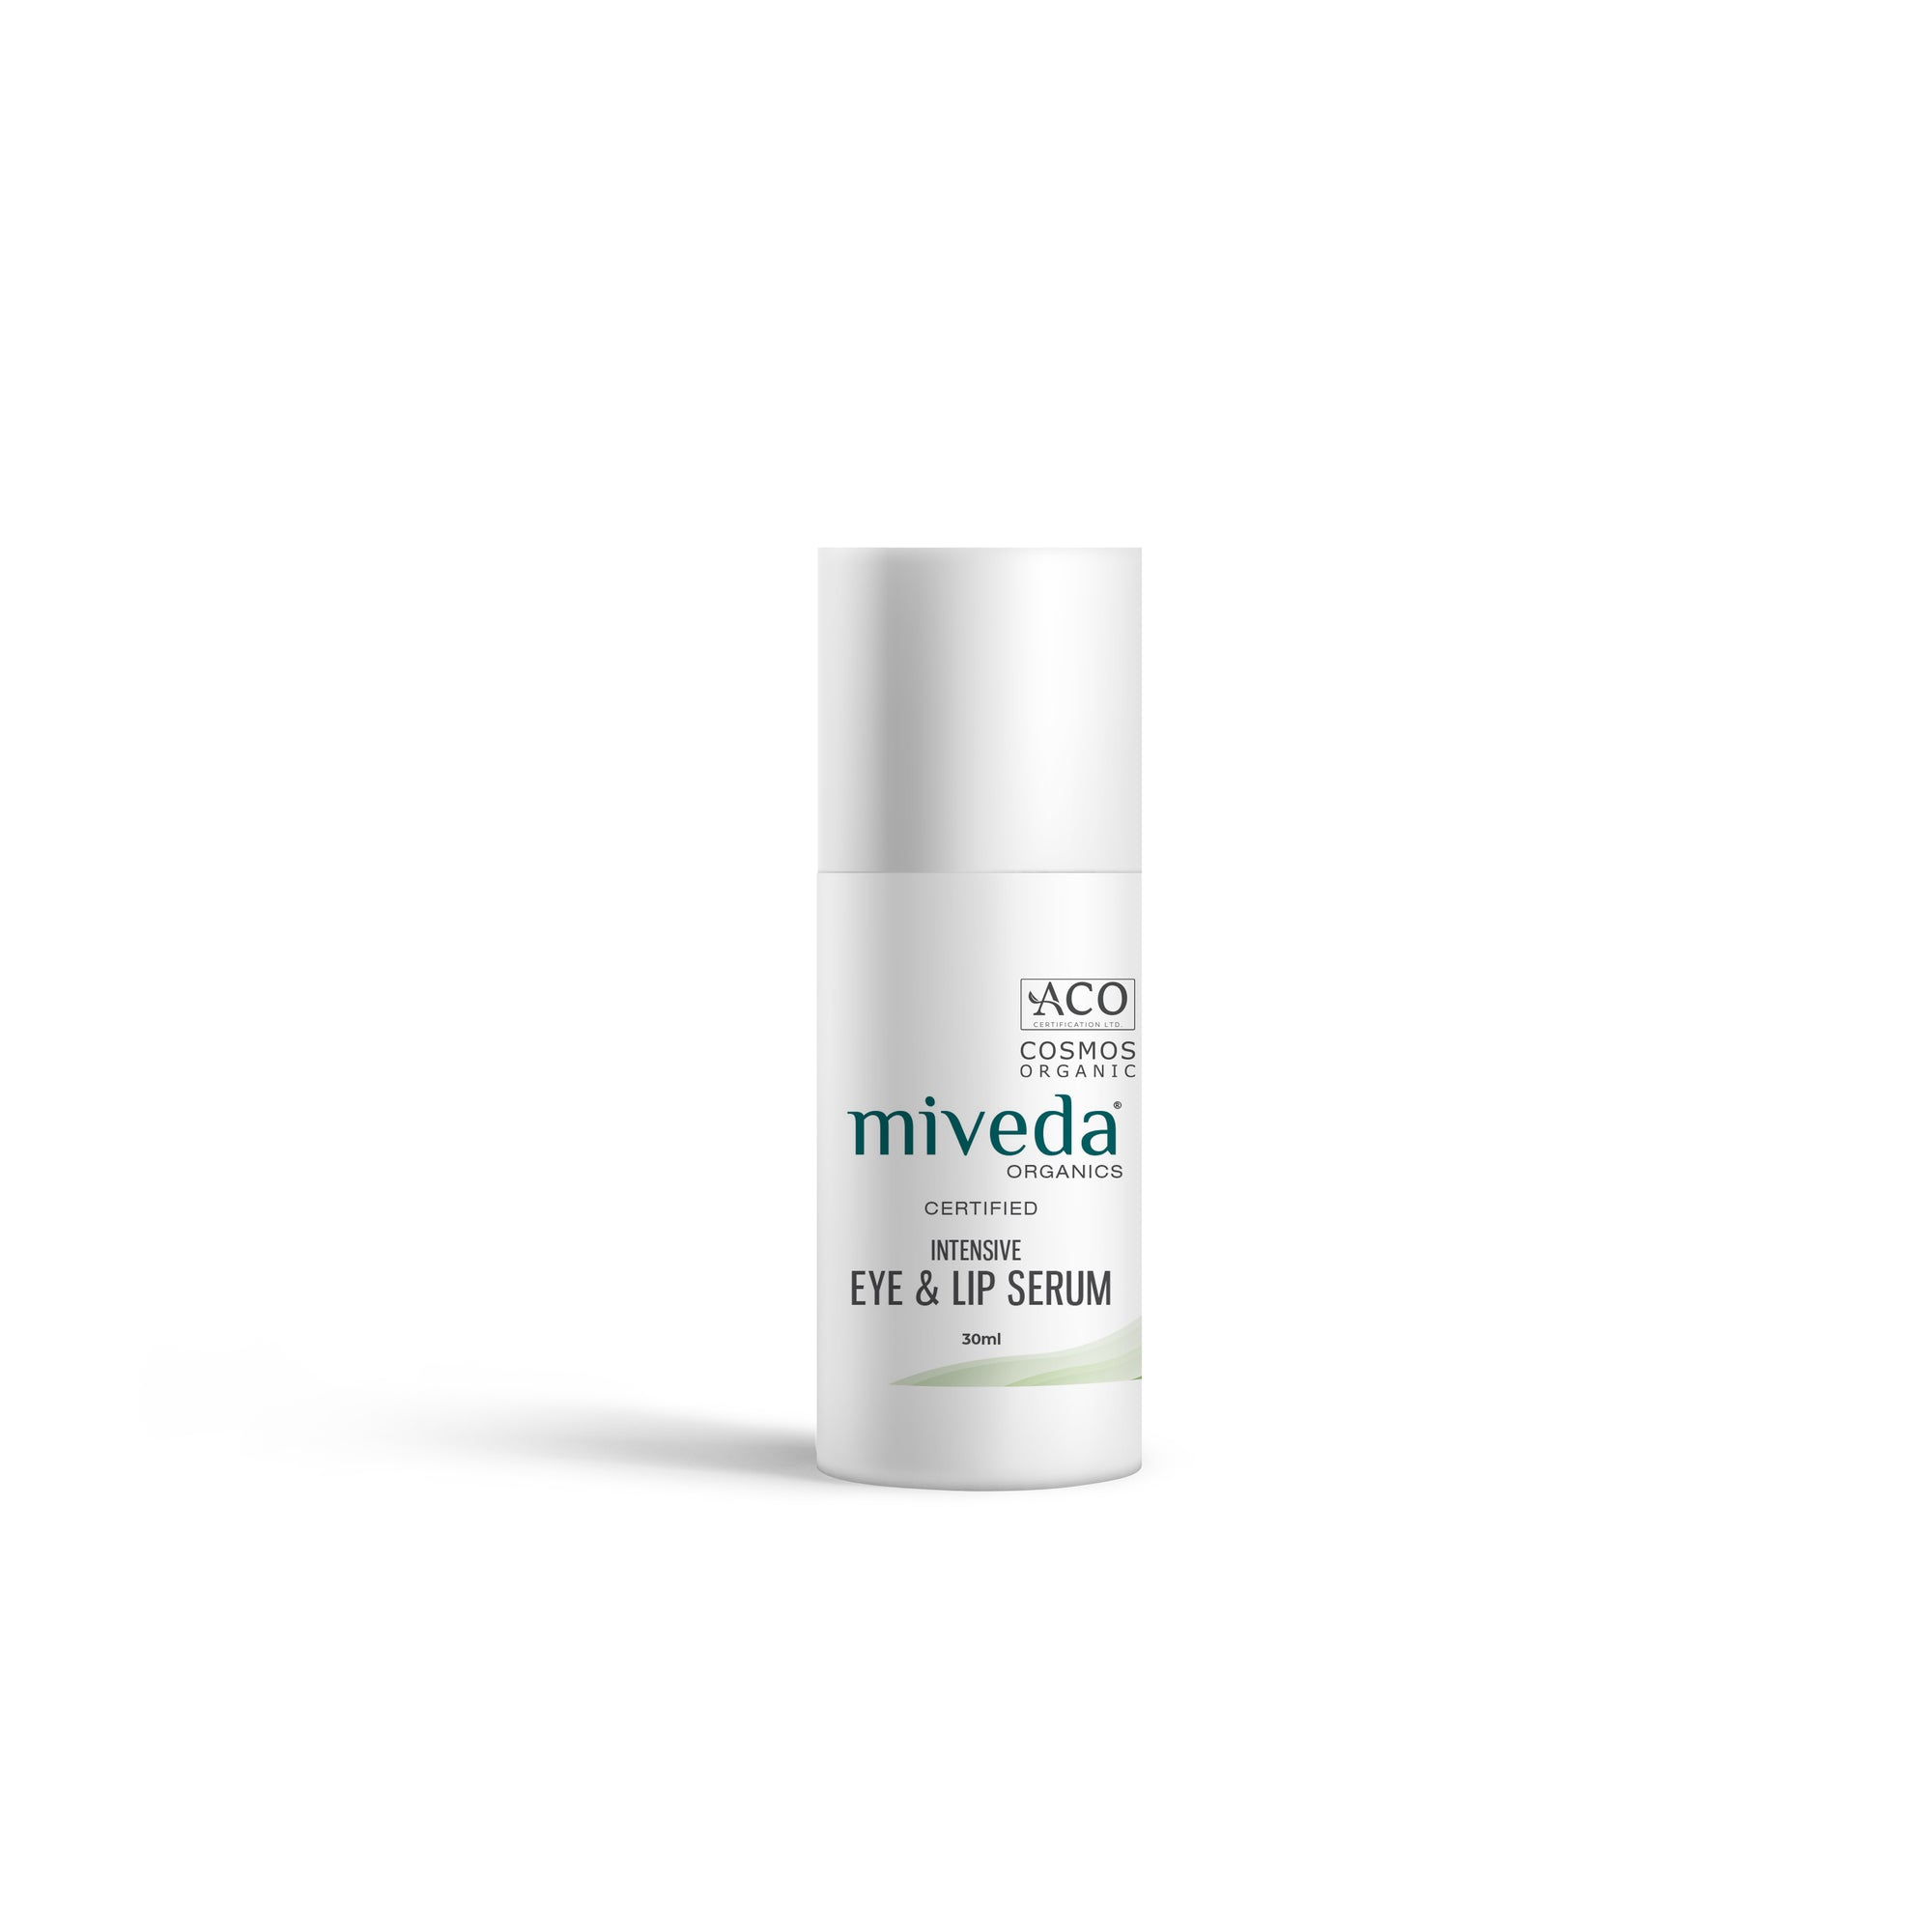 Intensive Eye & Lip Serum 30ml